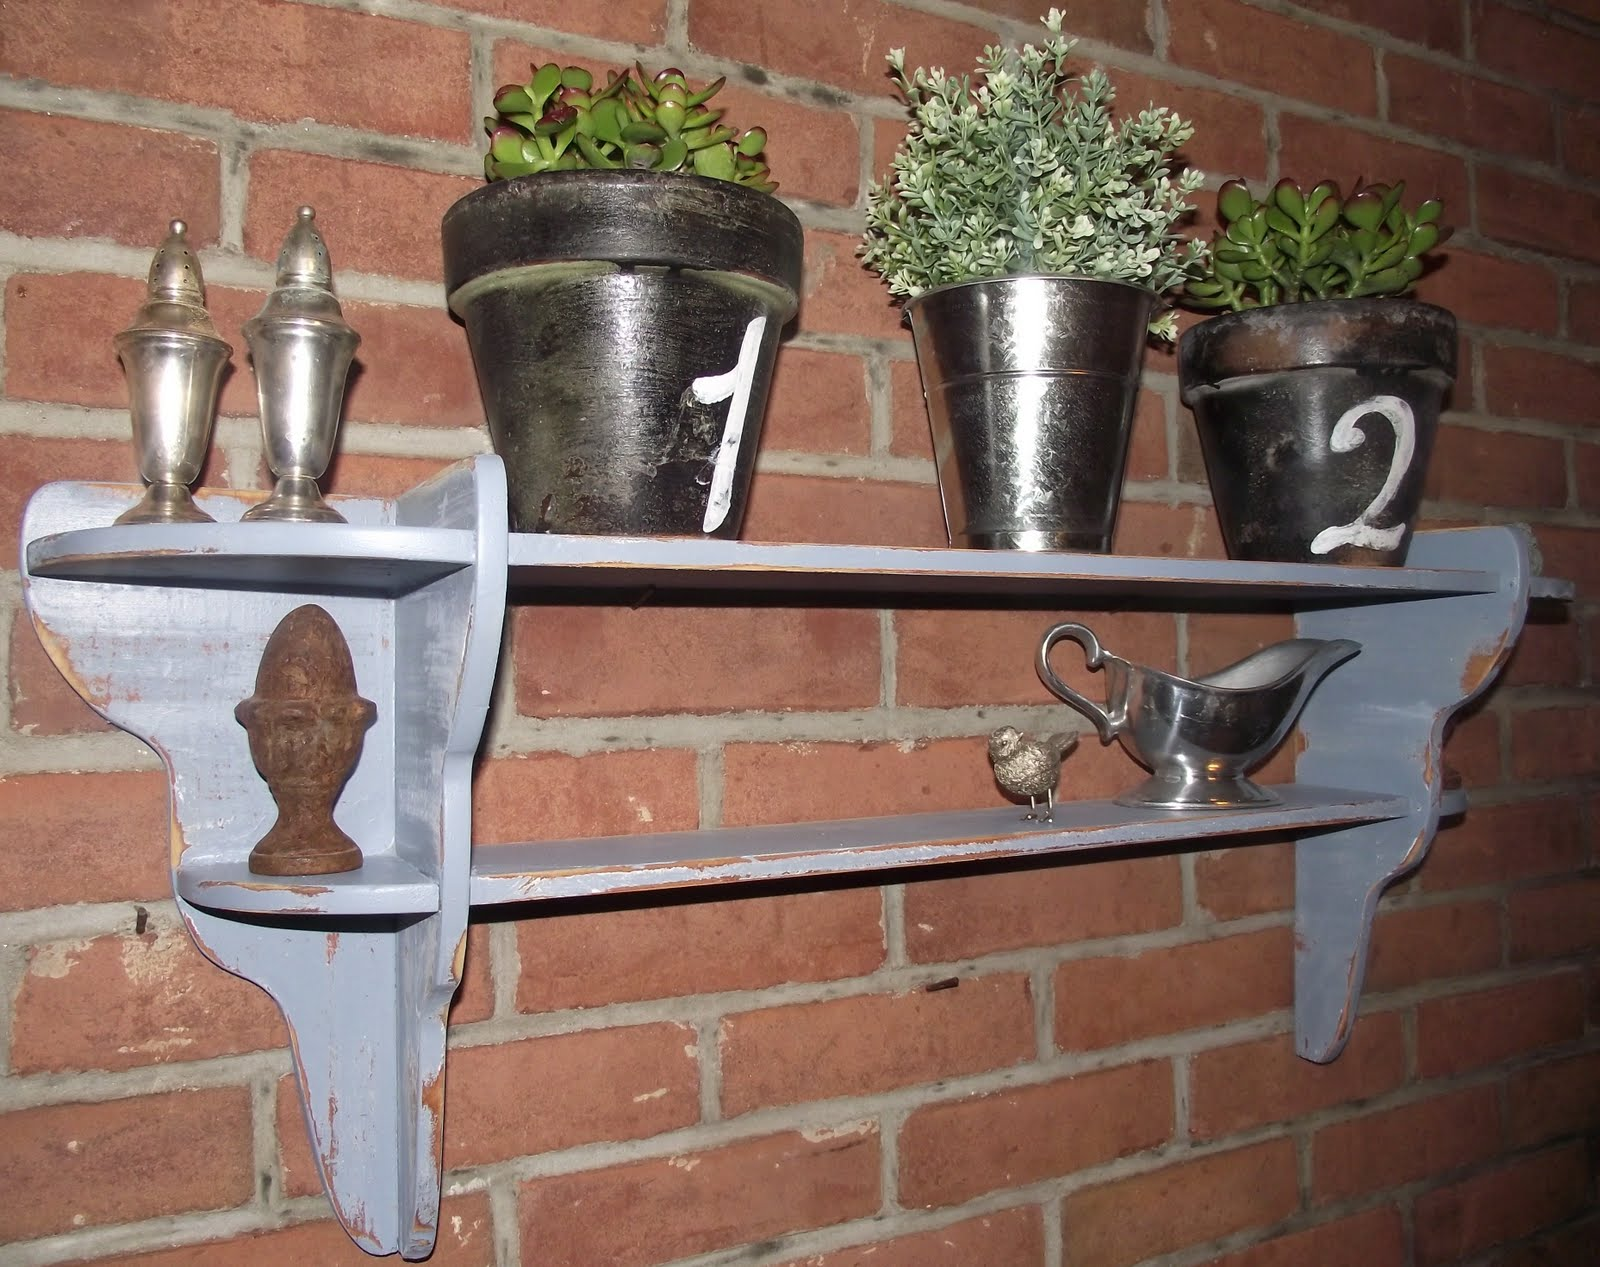 Whimsical Shelves Serendipity Chic Design Whimsical Chic Wall Shelf